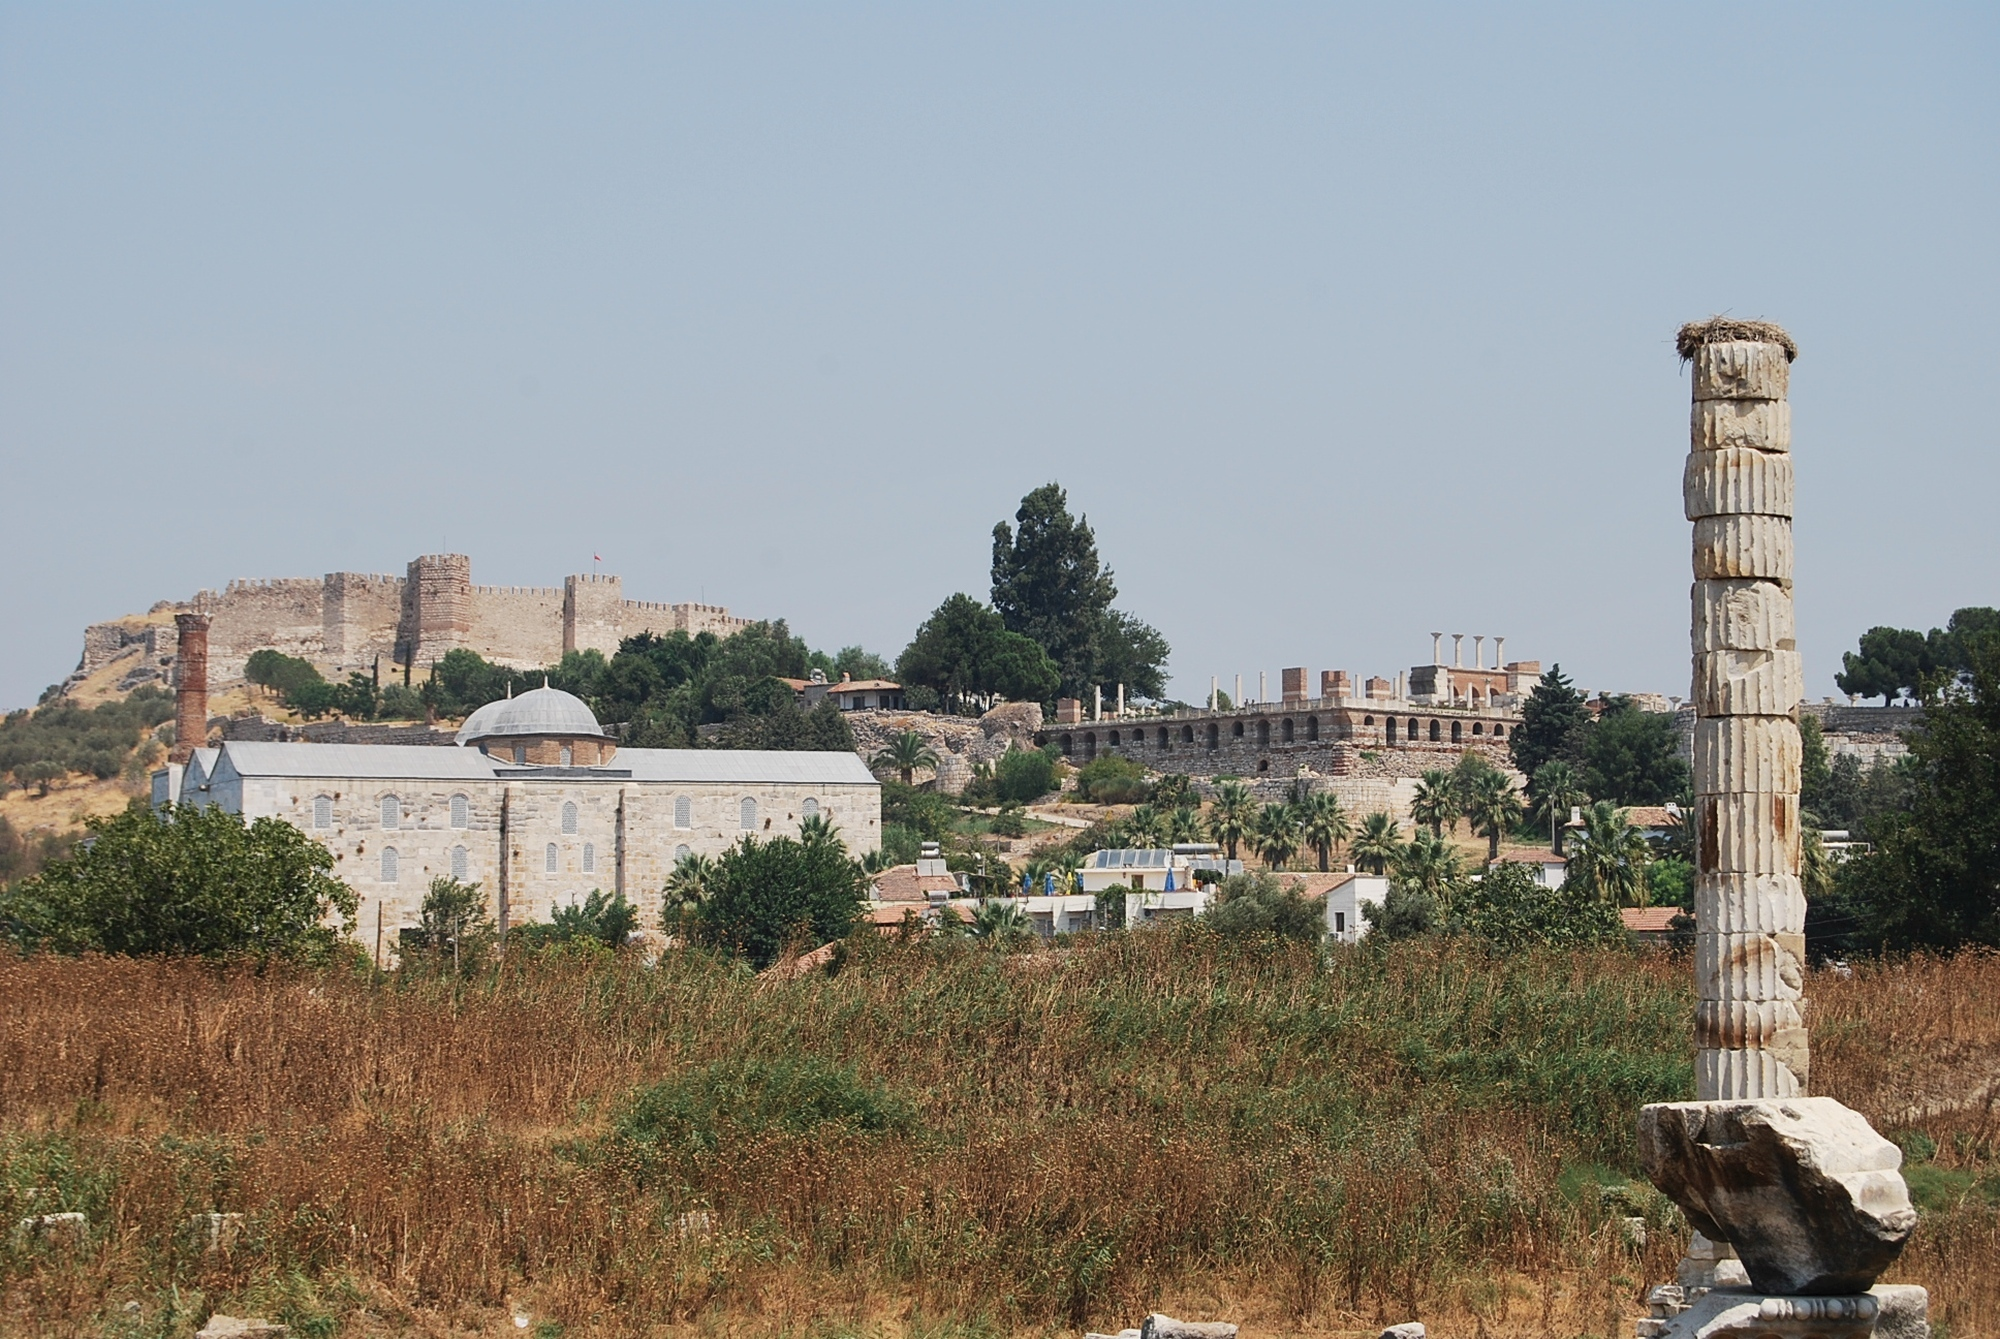 Location of İsa Bey Mosque, with the Artemision in the foreground and the Basilica of St. John in the background